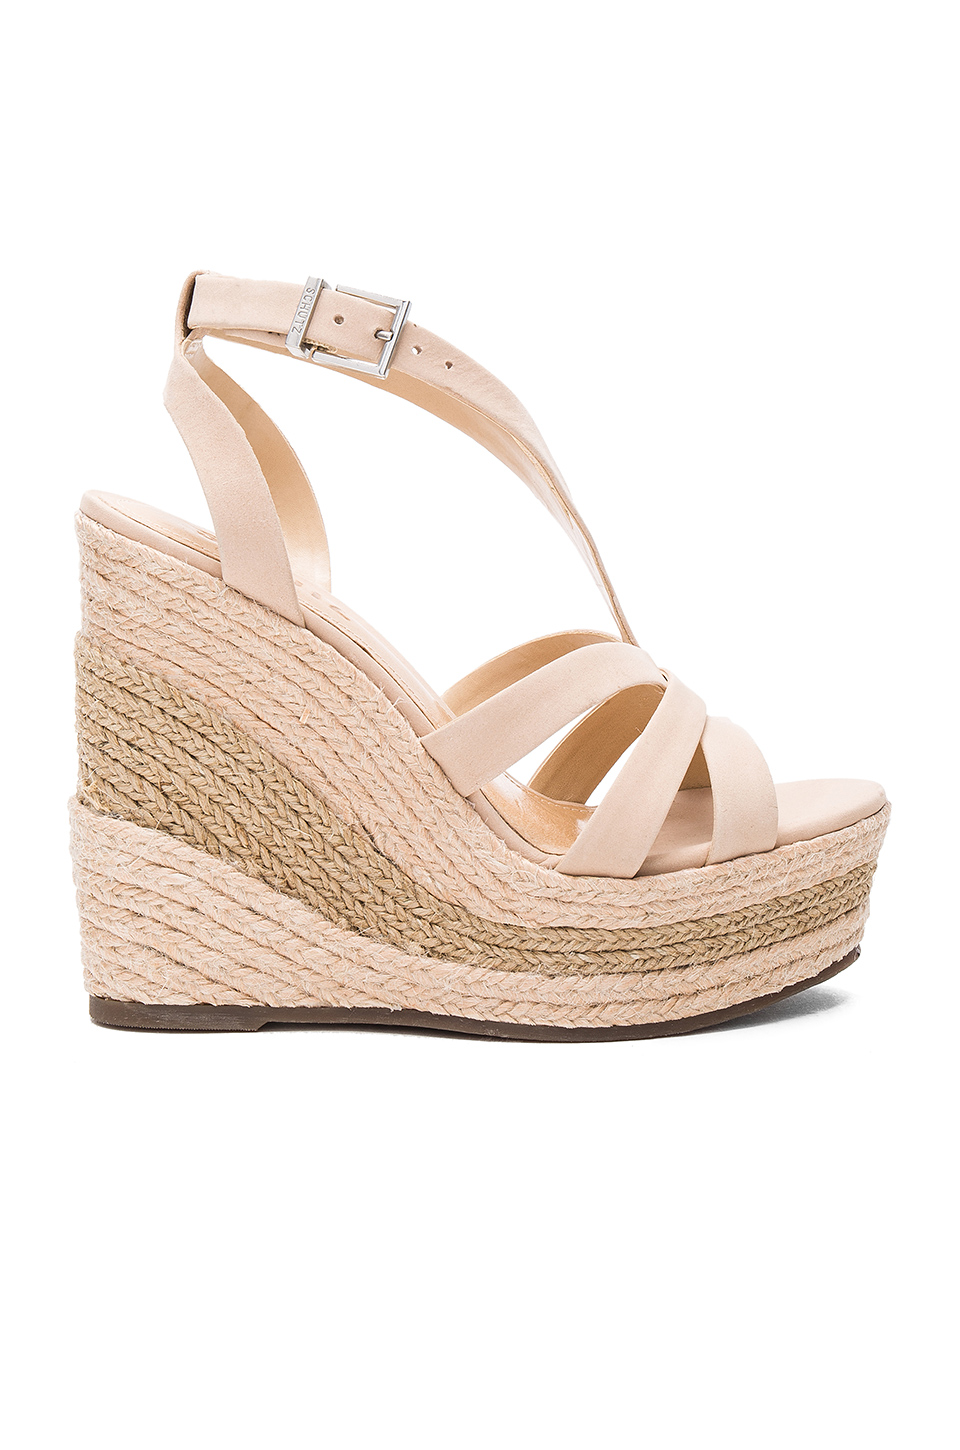 Schutz Daenerys Wedge in Tanini II